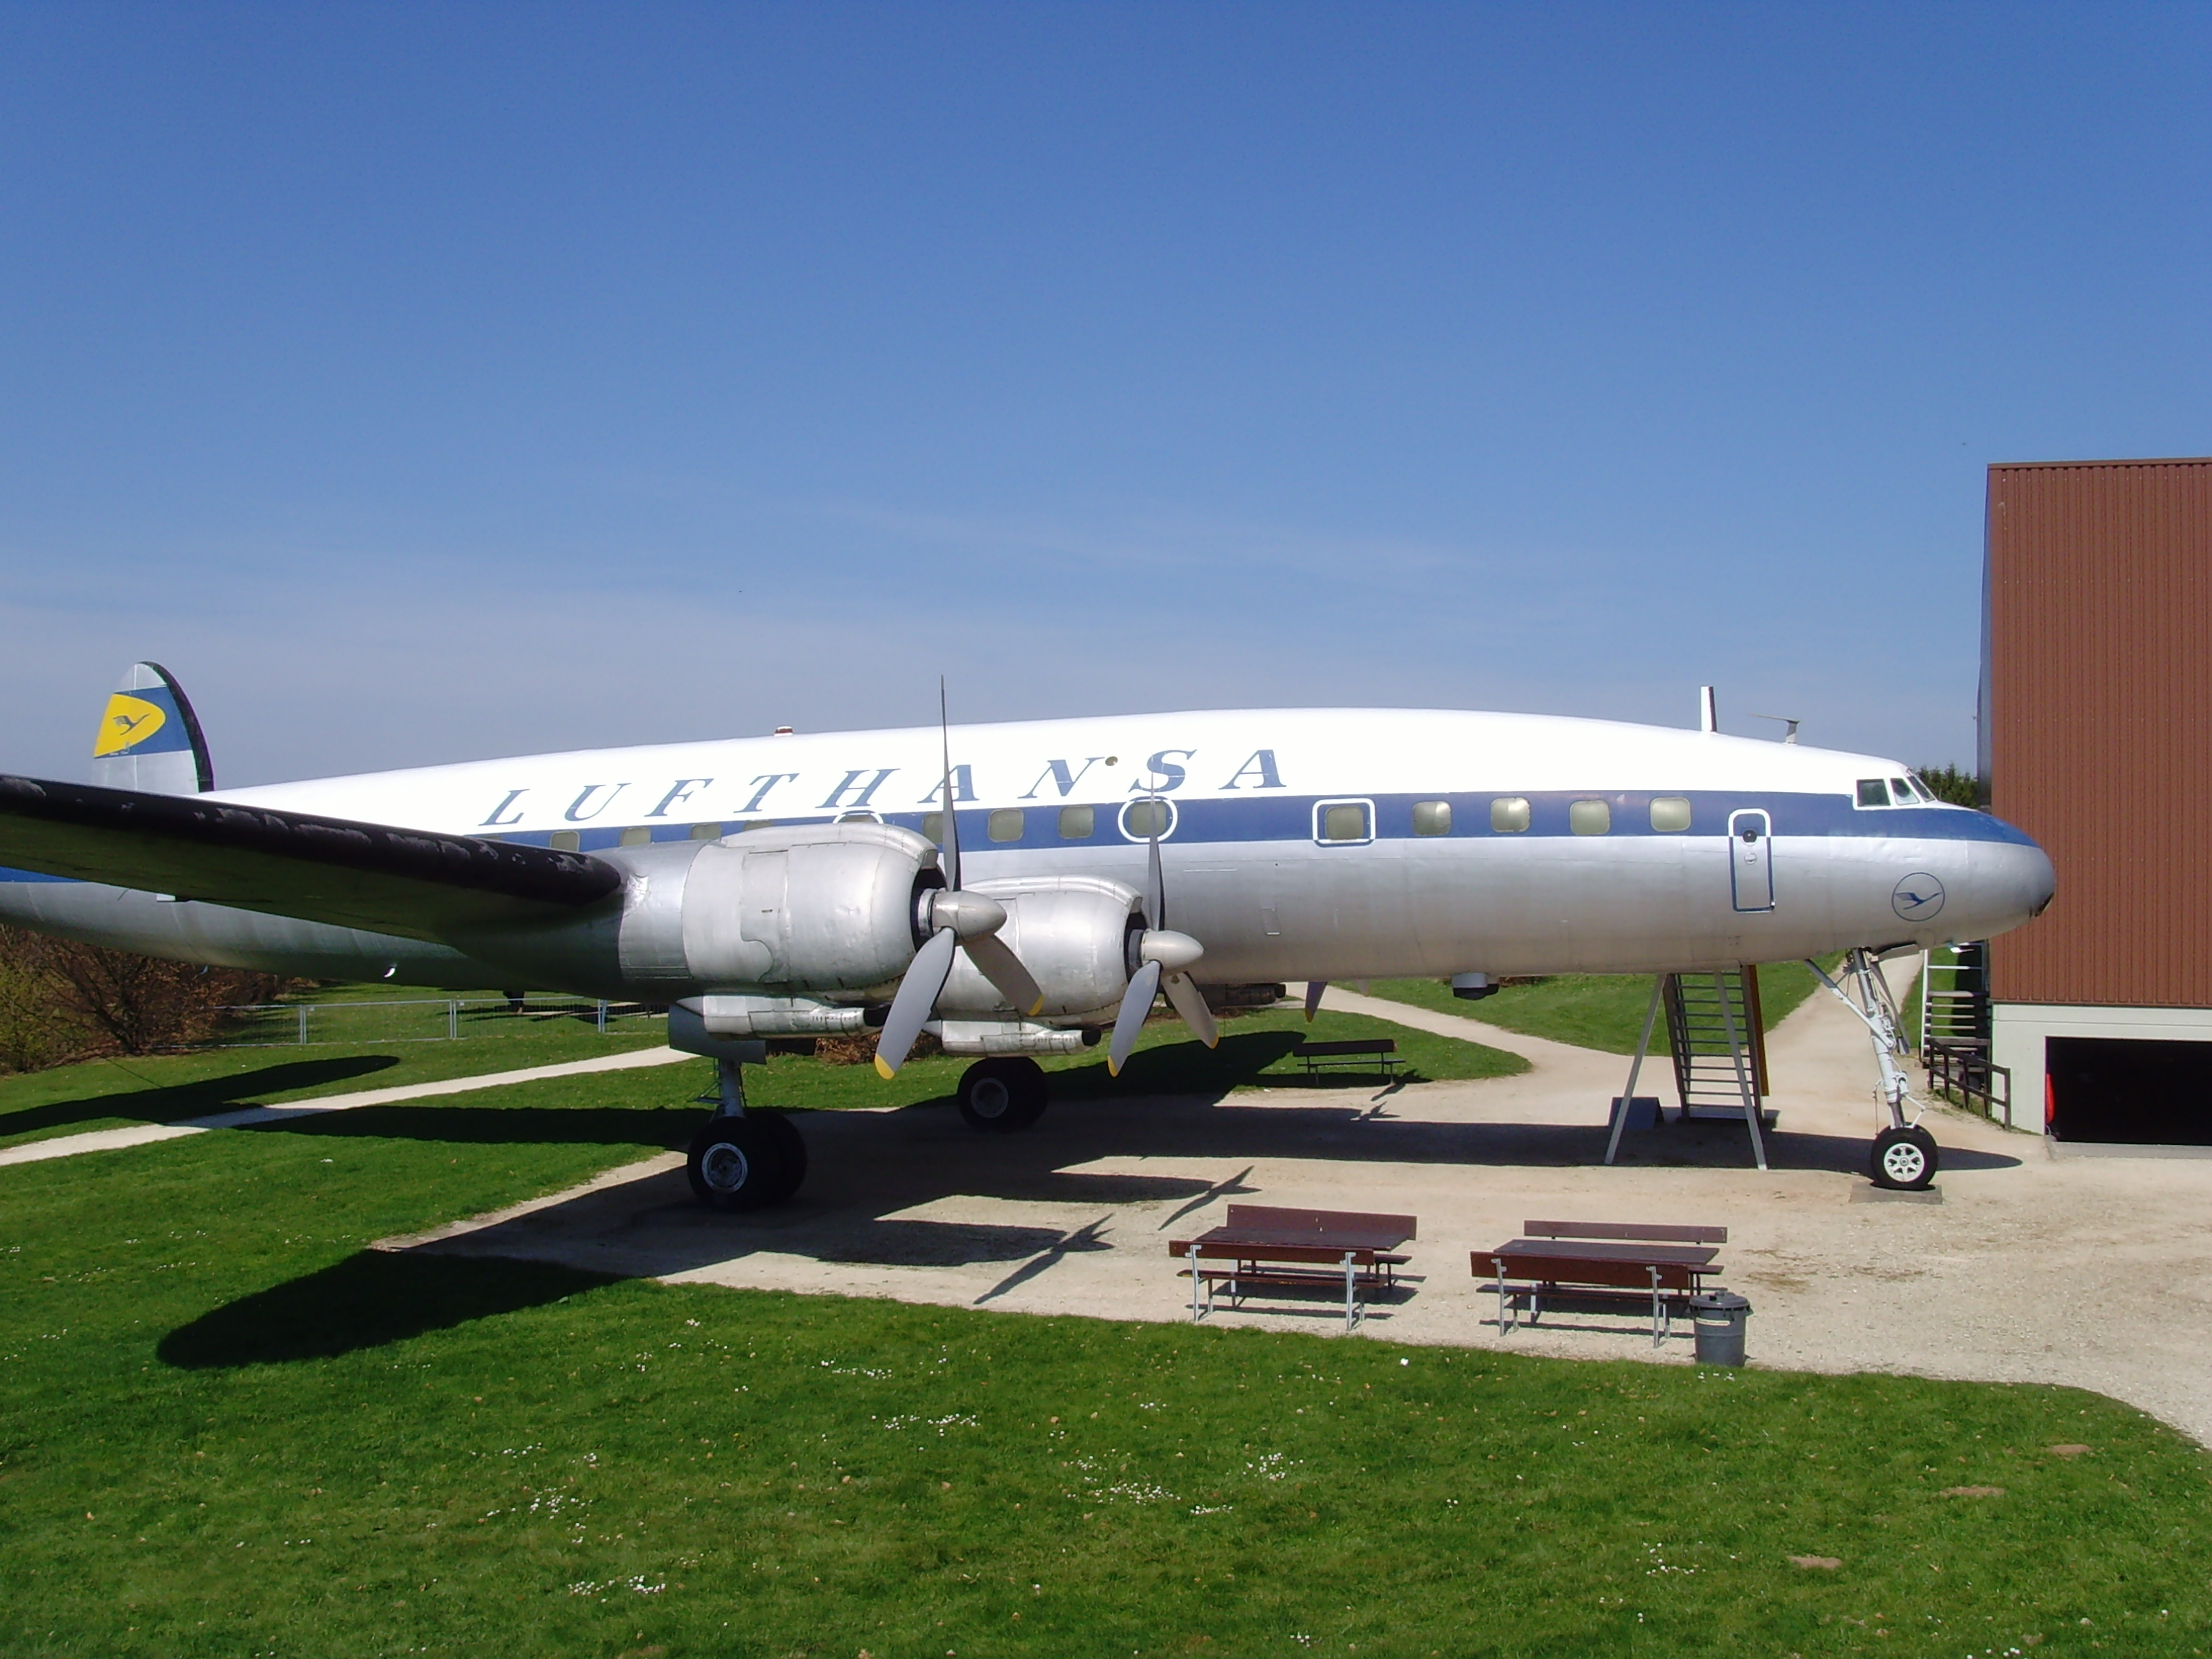 File:Flugausstellung Hermeskeil Lockheed L-1049 G Super Constellation - 1 -  Flickr -